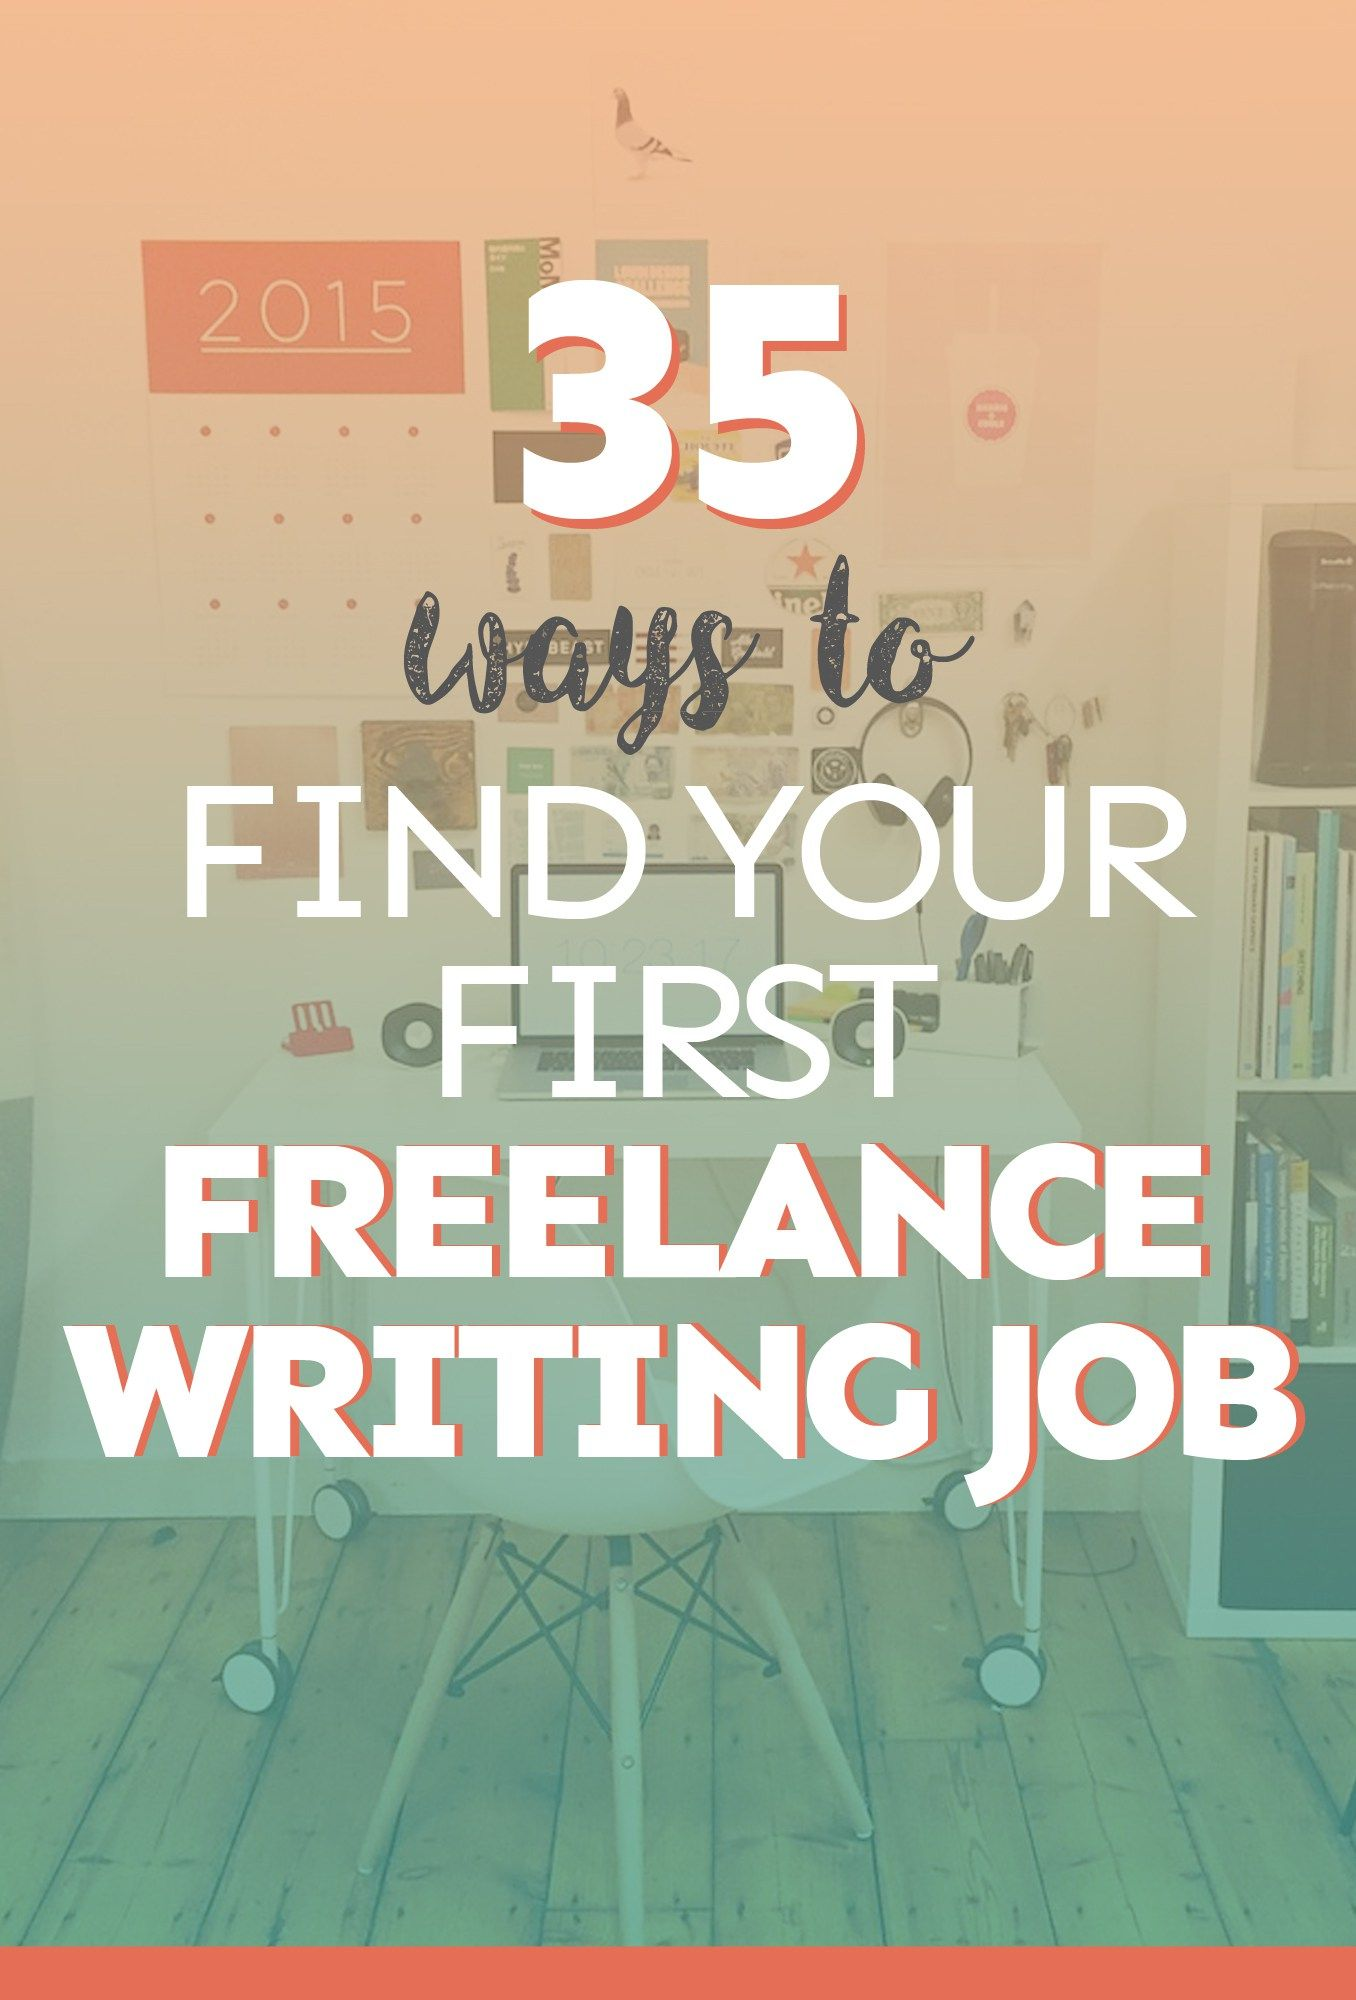 007 35 Ways to Find Your First Freelance Writing Job writing